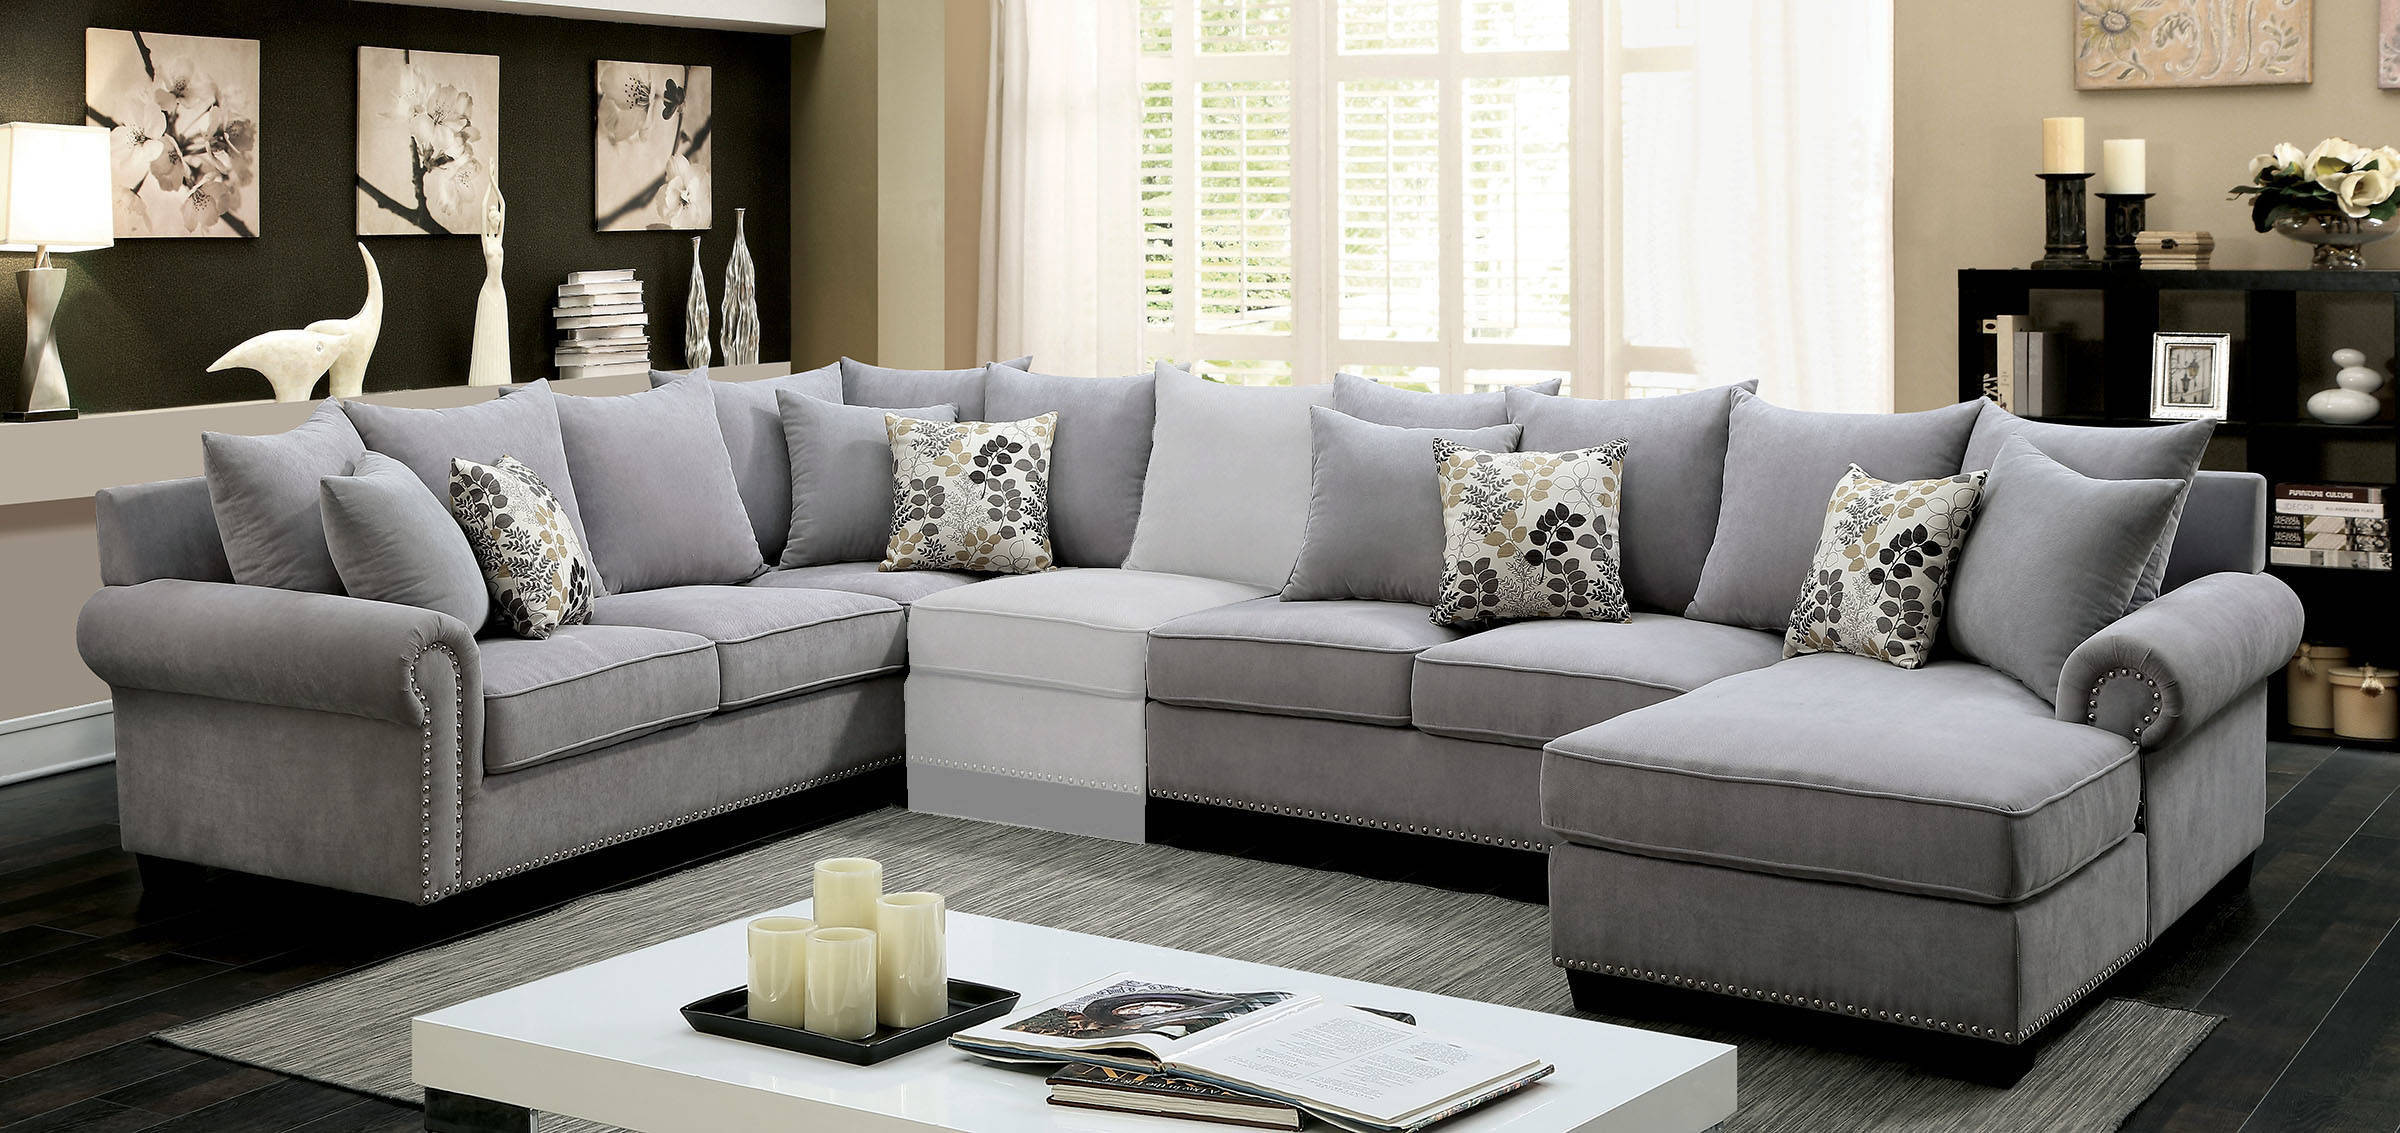 Furniture Of America Skyler Ii Sectional The Classy Home